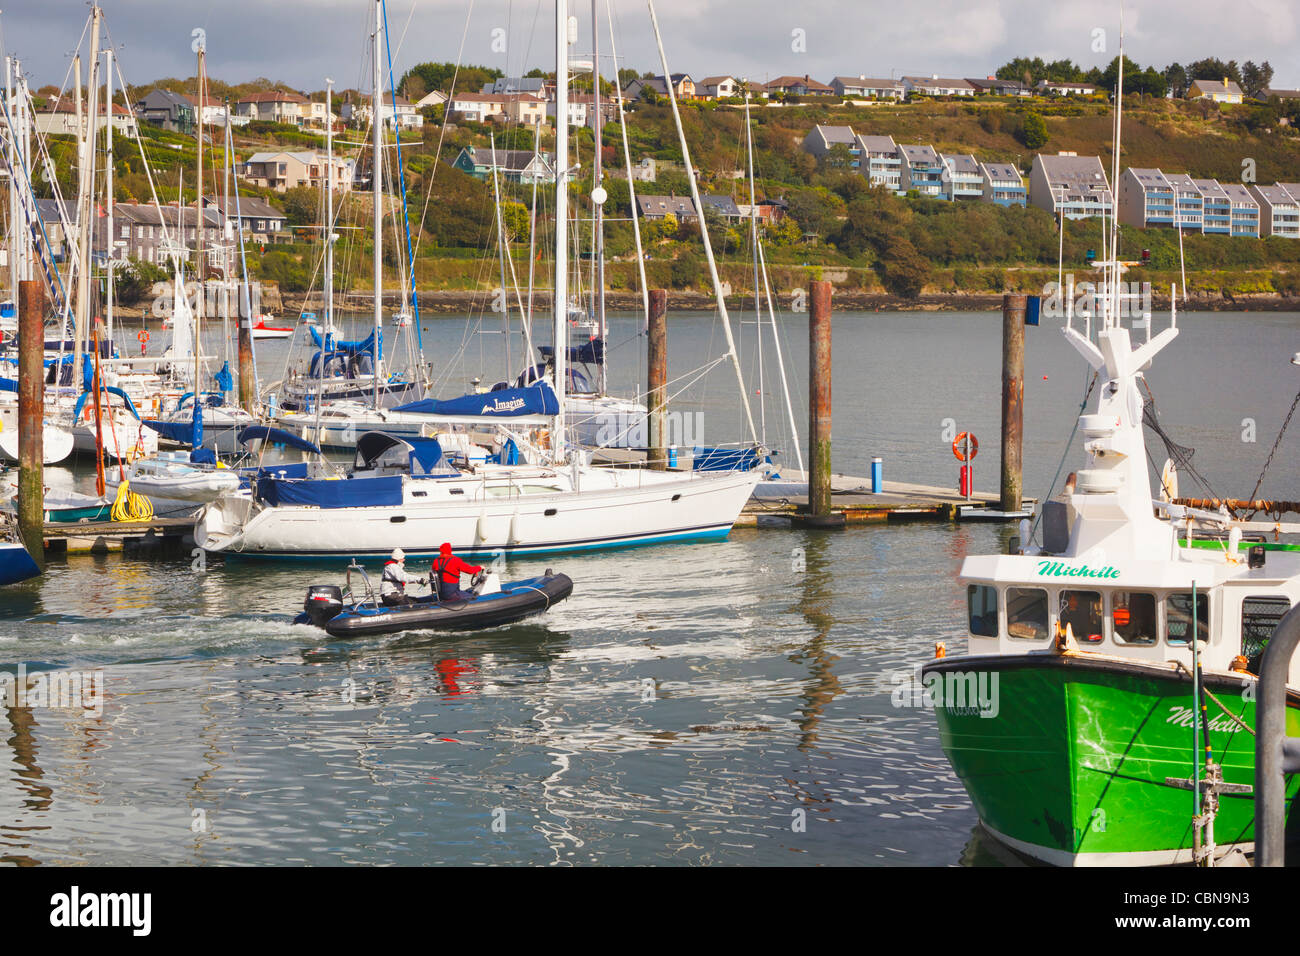 Zodiac leaving harbour at Kinsale, County Cork, Republic of Ireland. - Stock Image